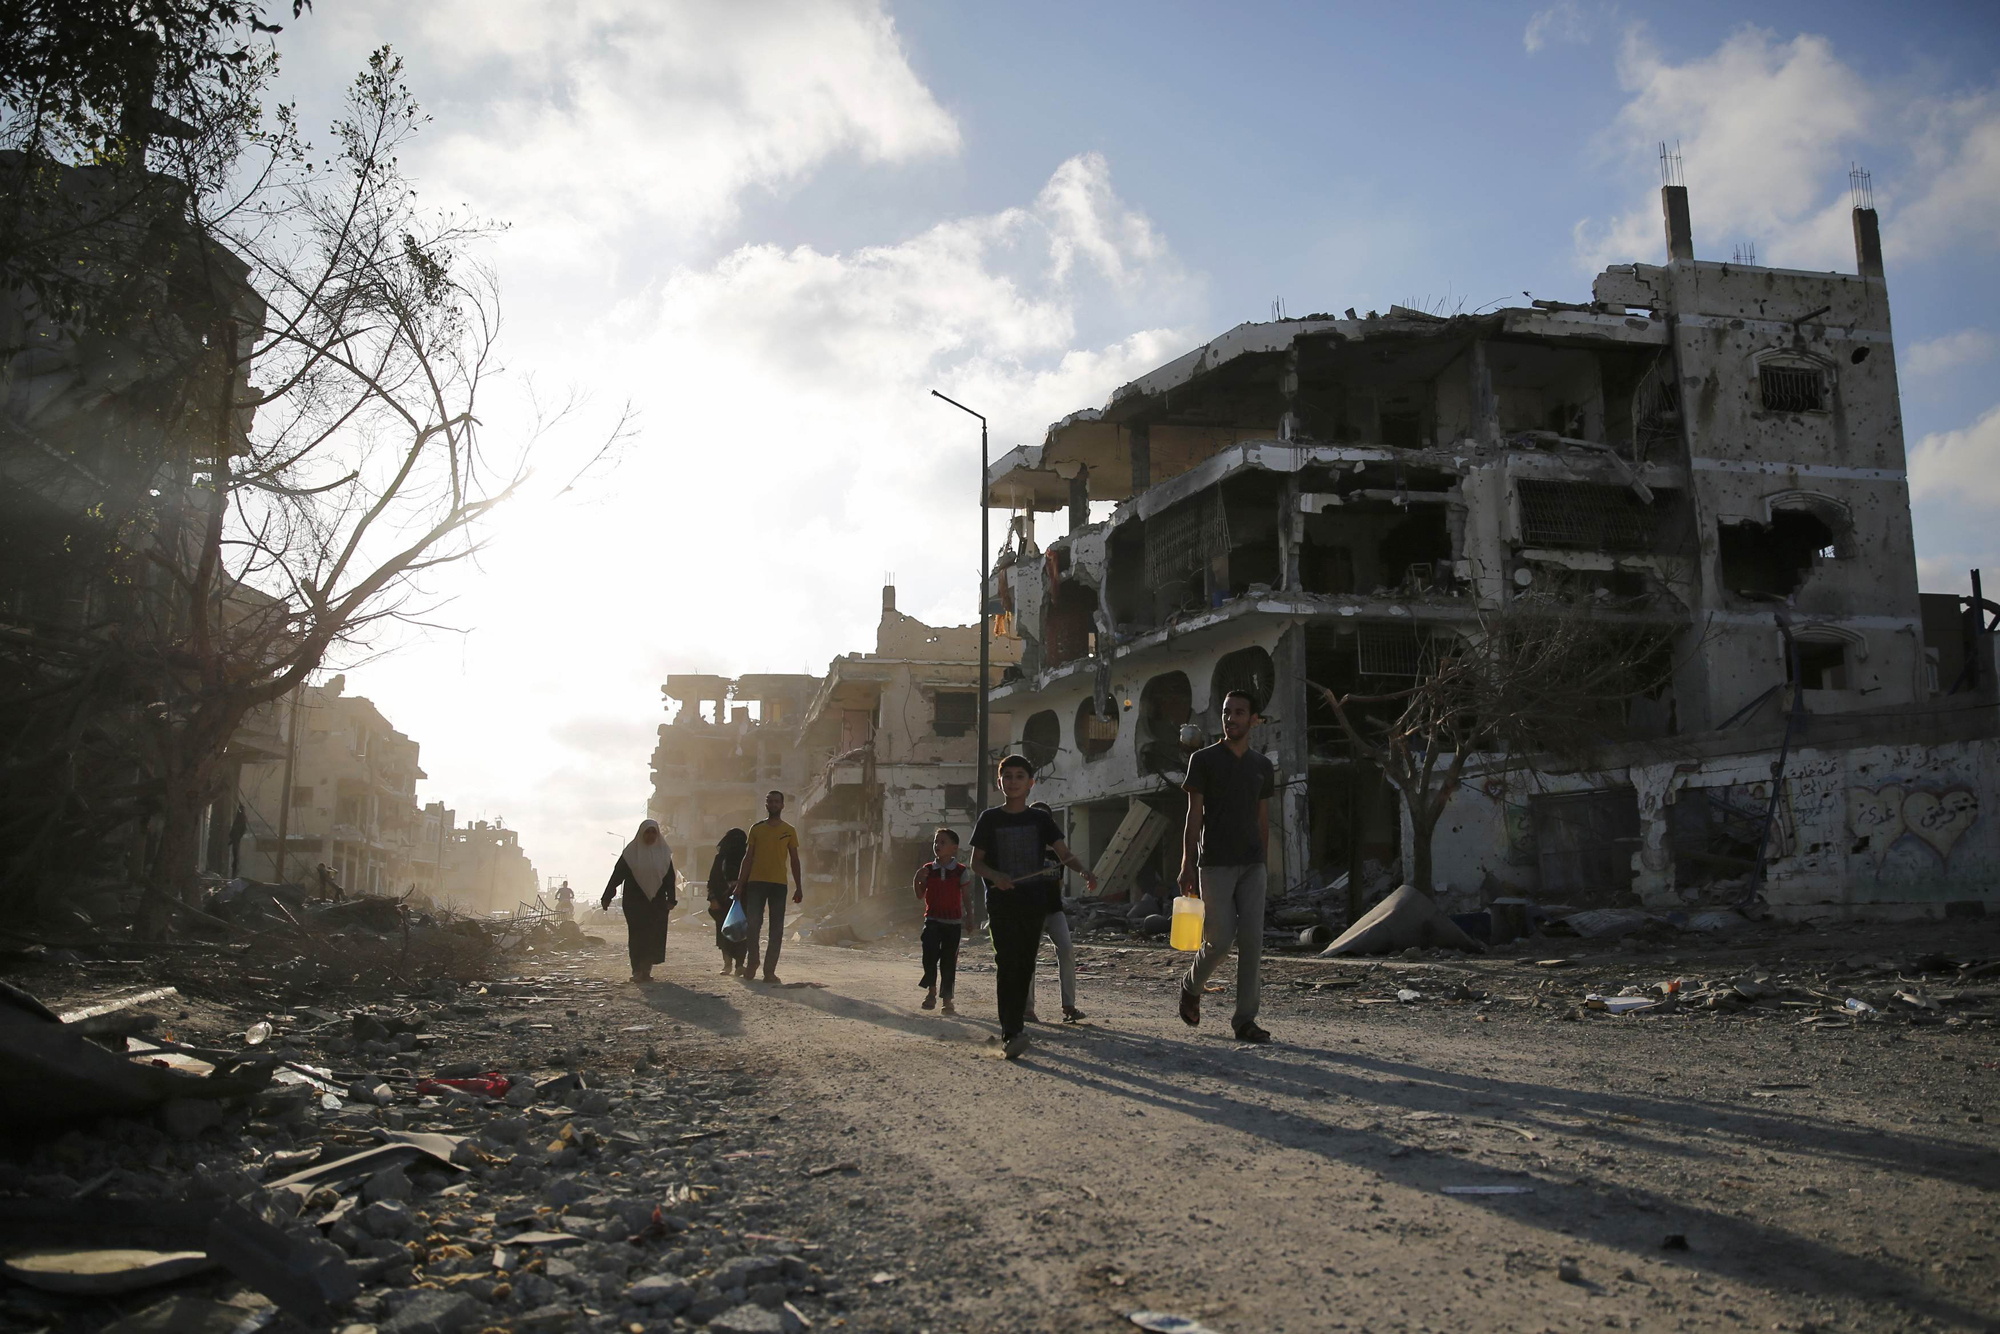 Palestinians walk amid the ruins of destroyed homes in the Shujayeh neighborhood, which witnesses said was heavily hit by Israeli shelling and air strikes during an Israeli offensive, east of Gaza City, Aug. 6, 2014.